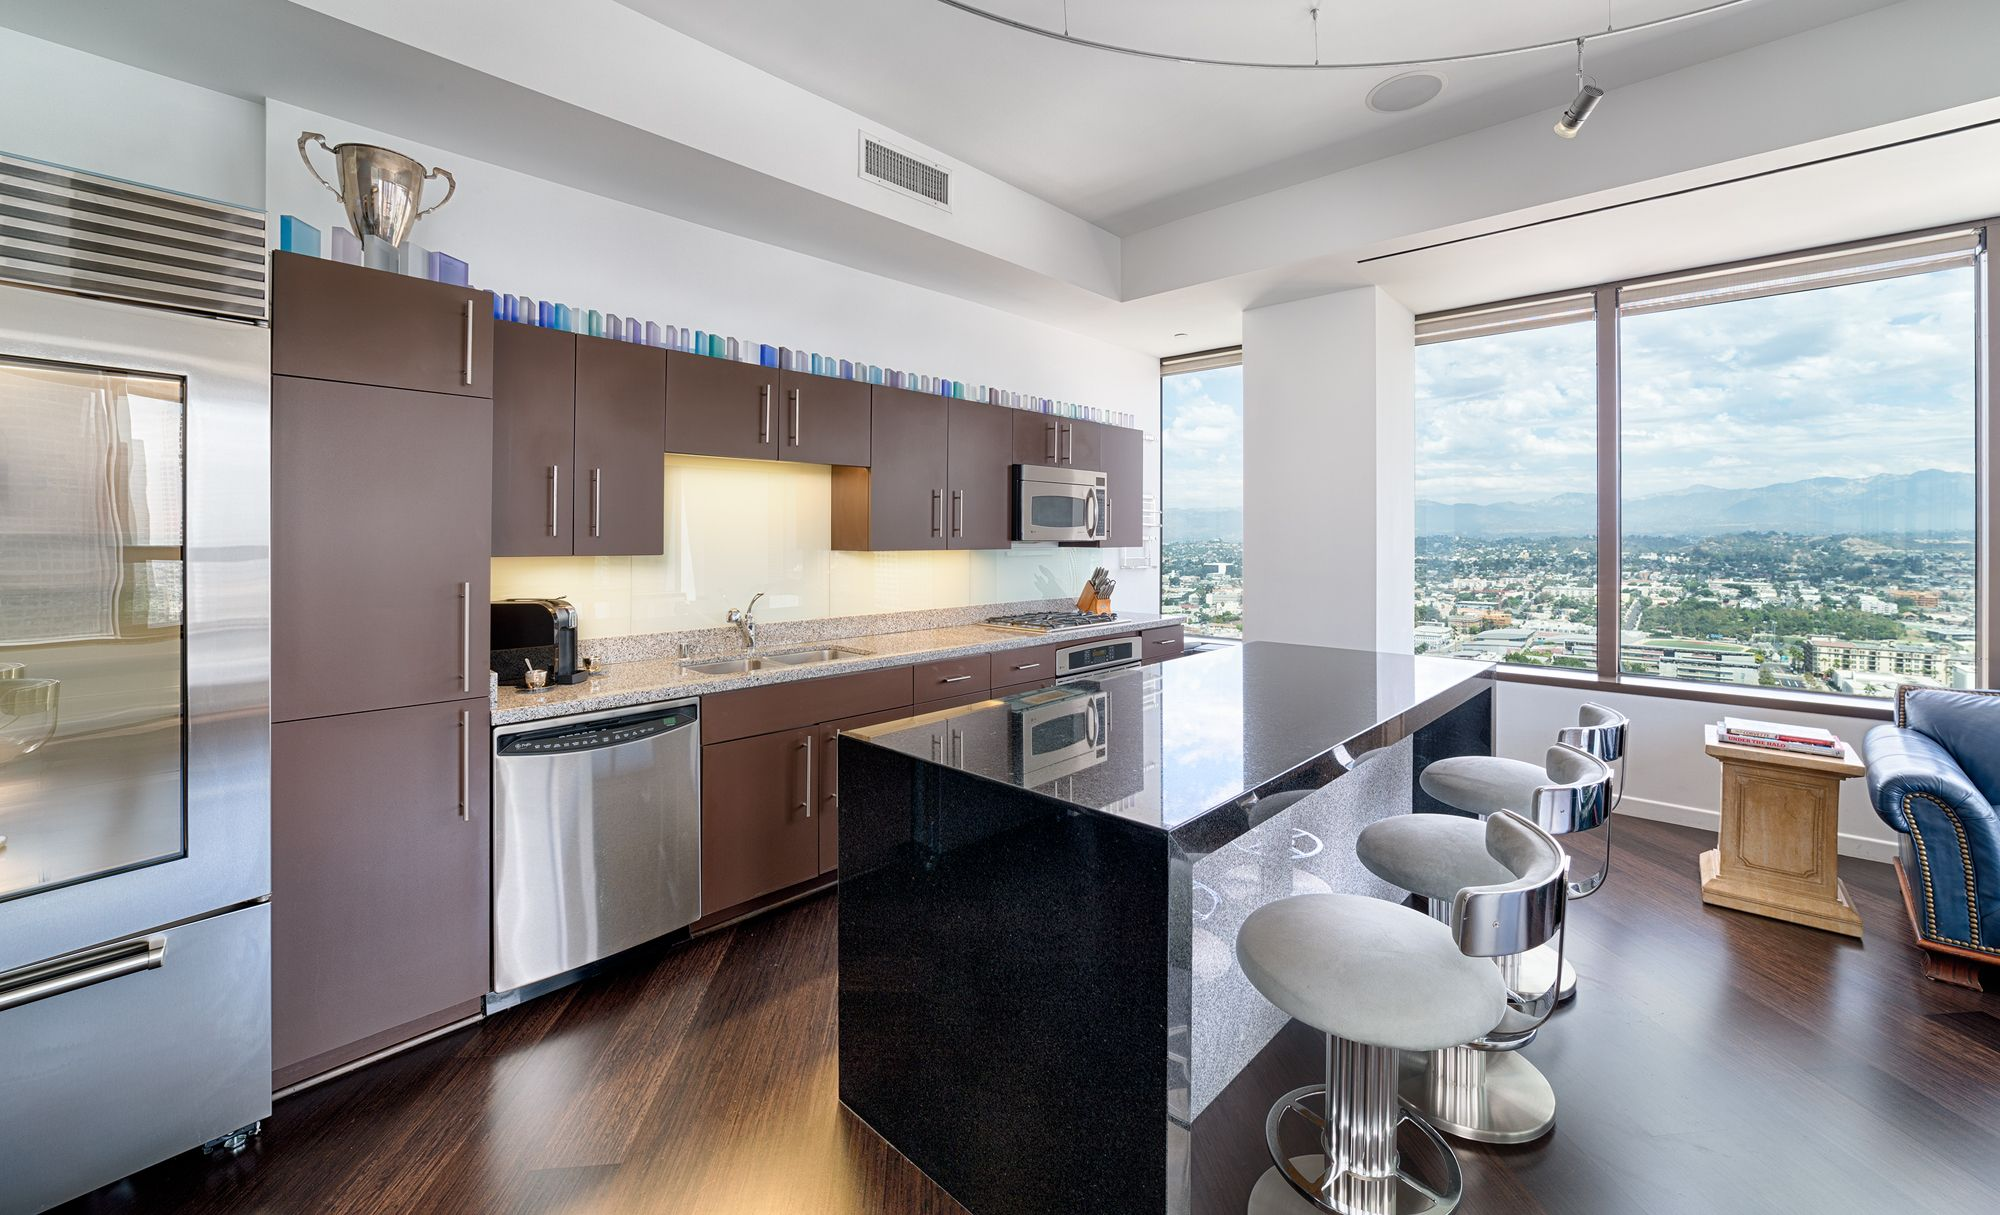 Kitchen Views at 1100 Wilshire in Los Angeles